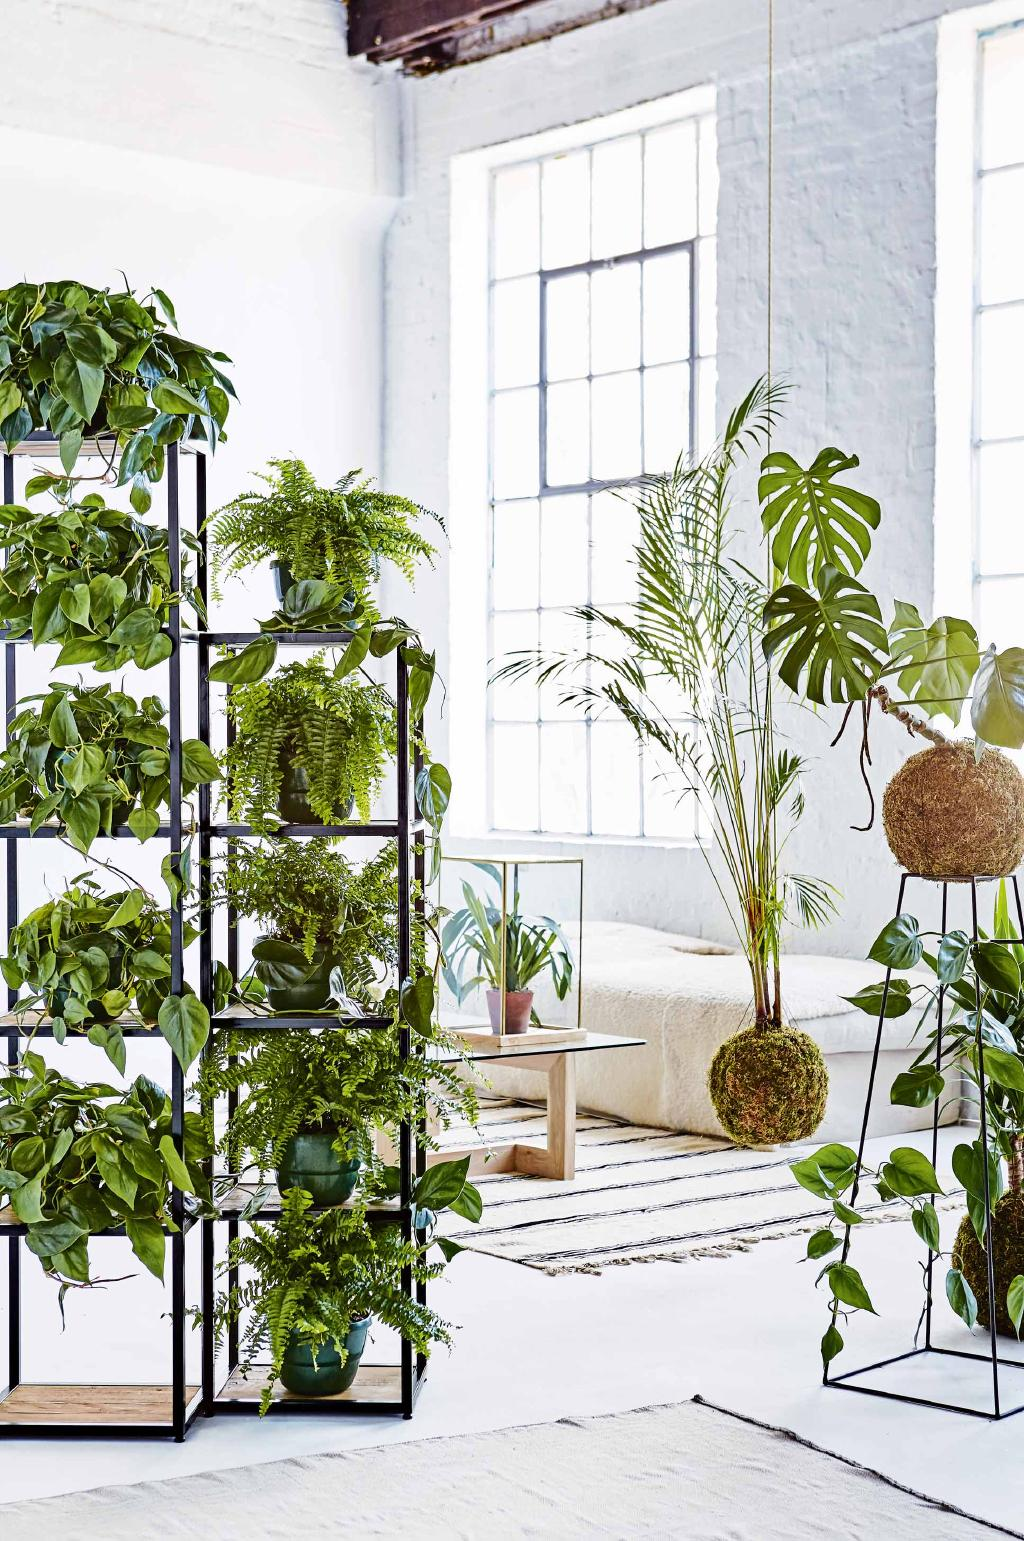 Free-Standing-Shelves-with-Pot-Plants